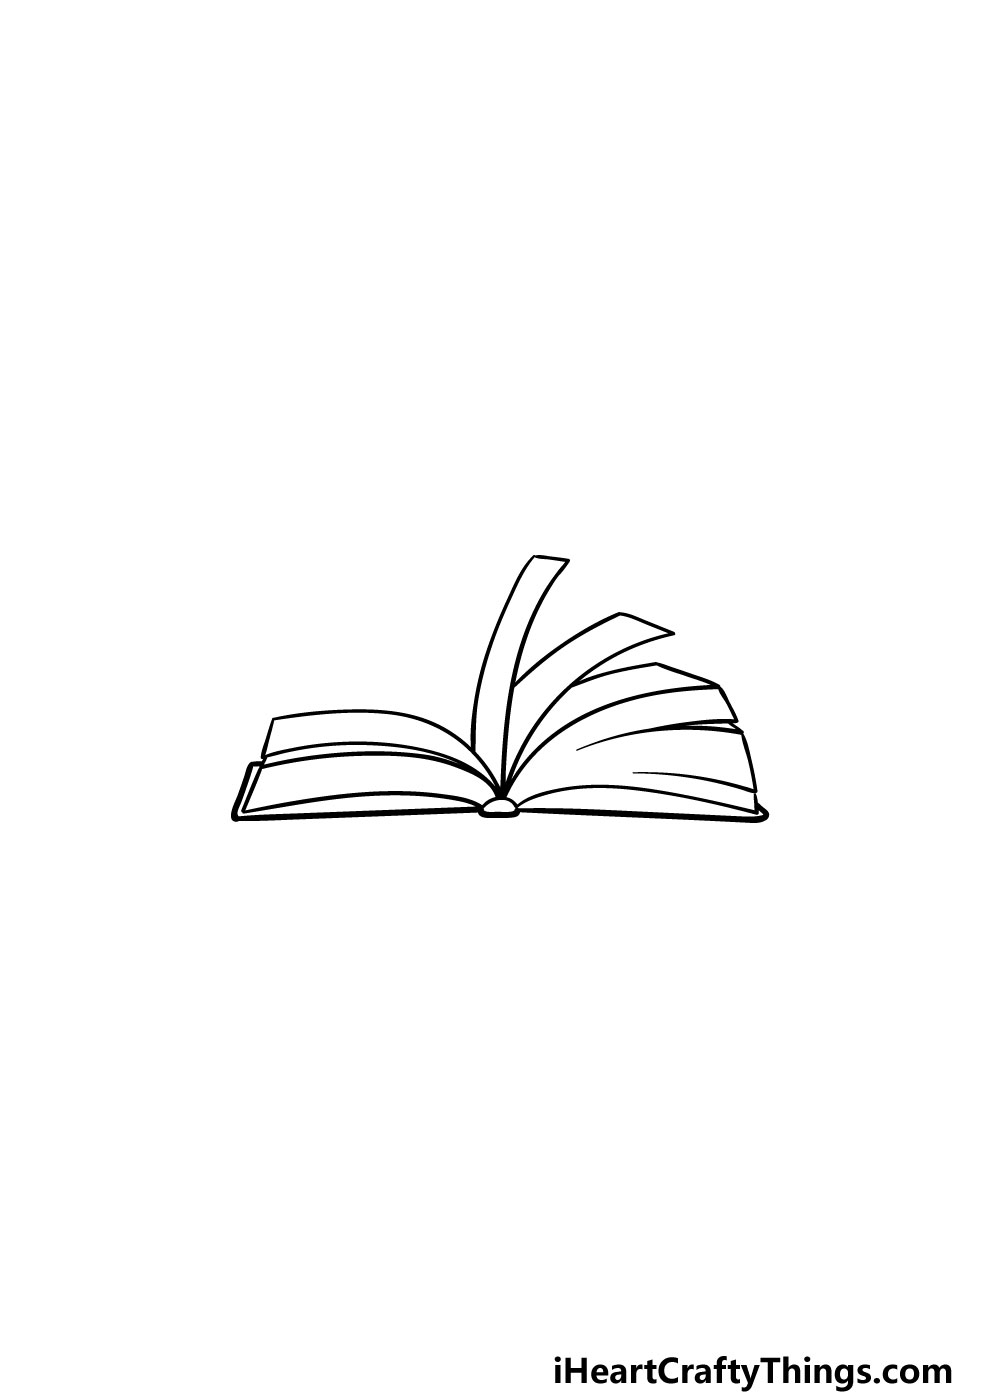 drawing an open book step 4